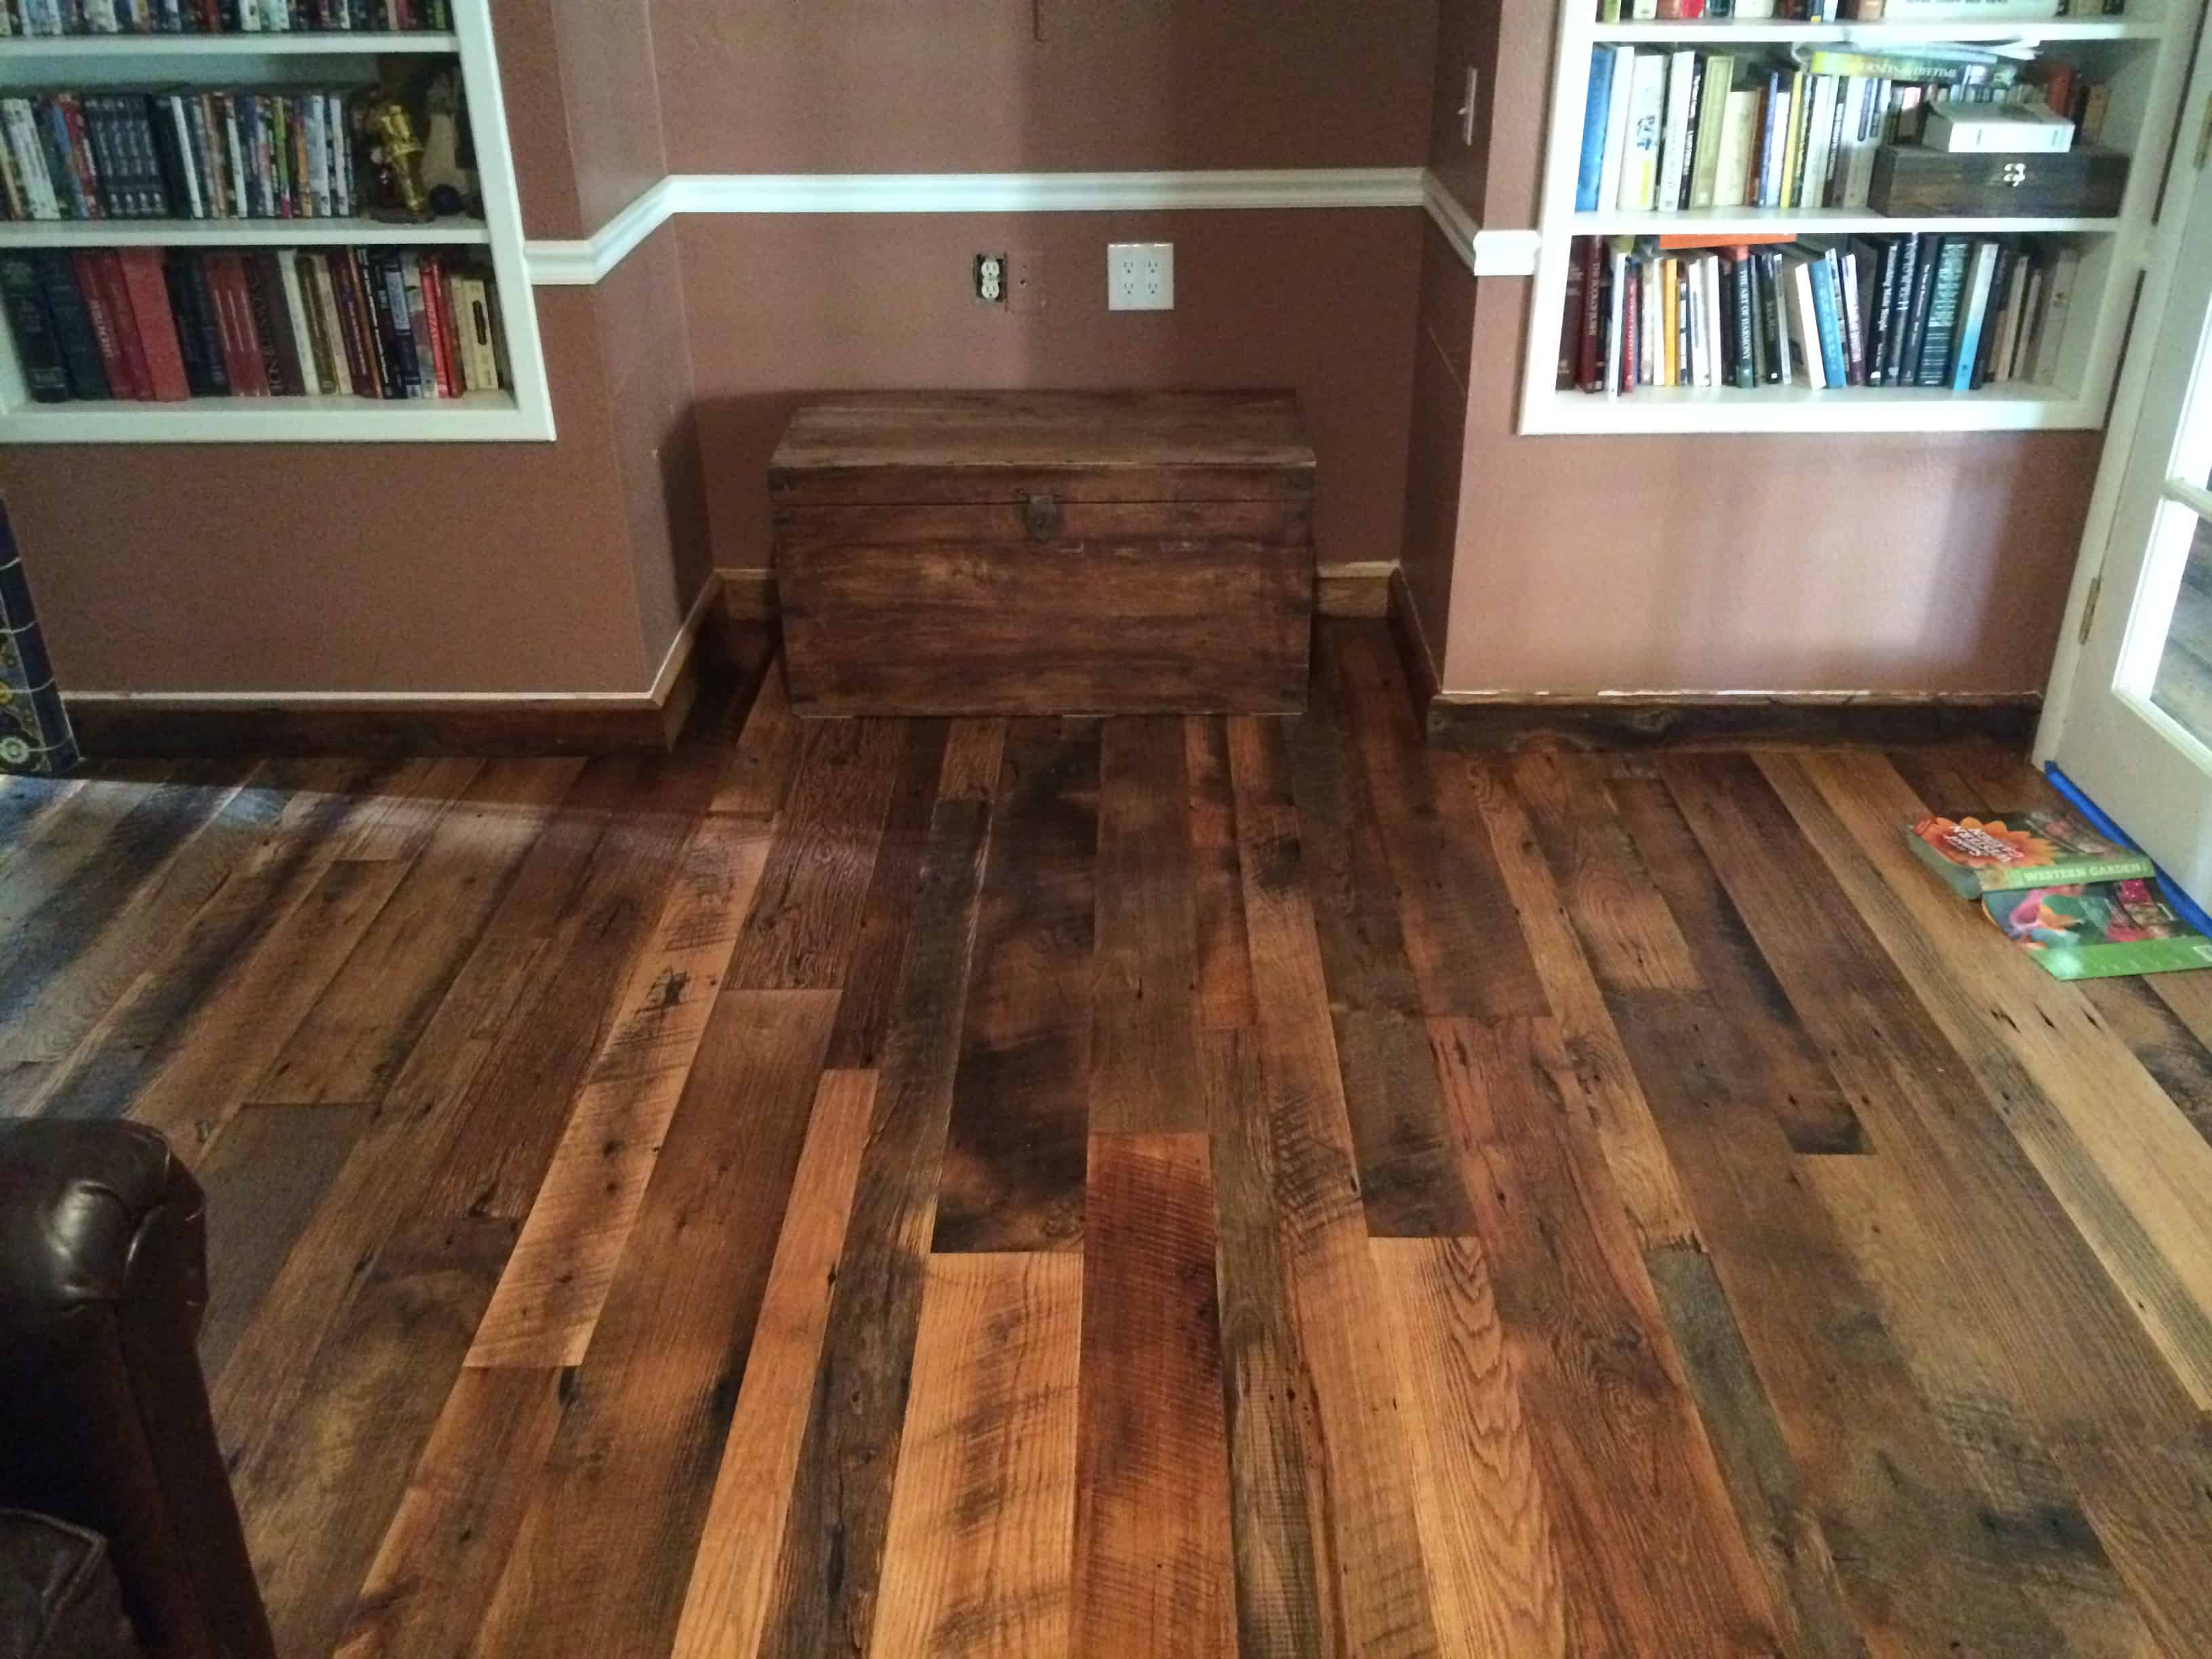 wooden floors make your wood floors perform beautifully in your home or office! IVIHDEO